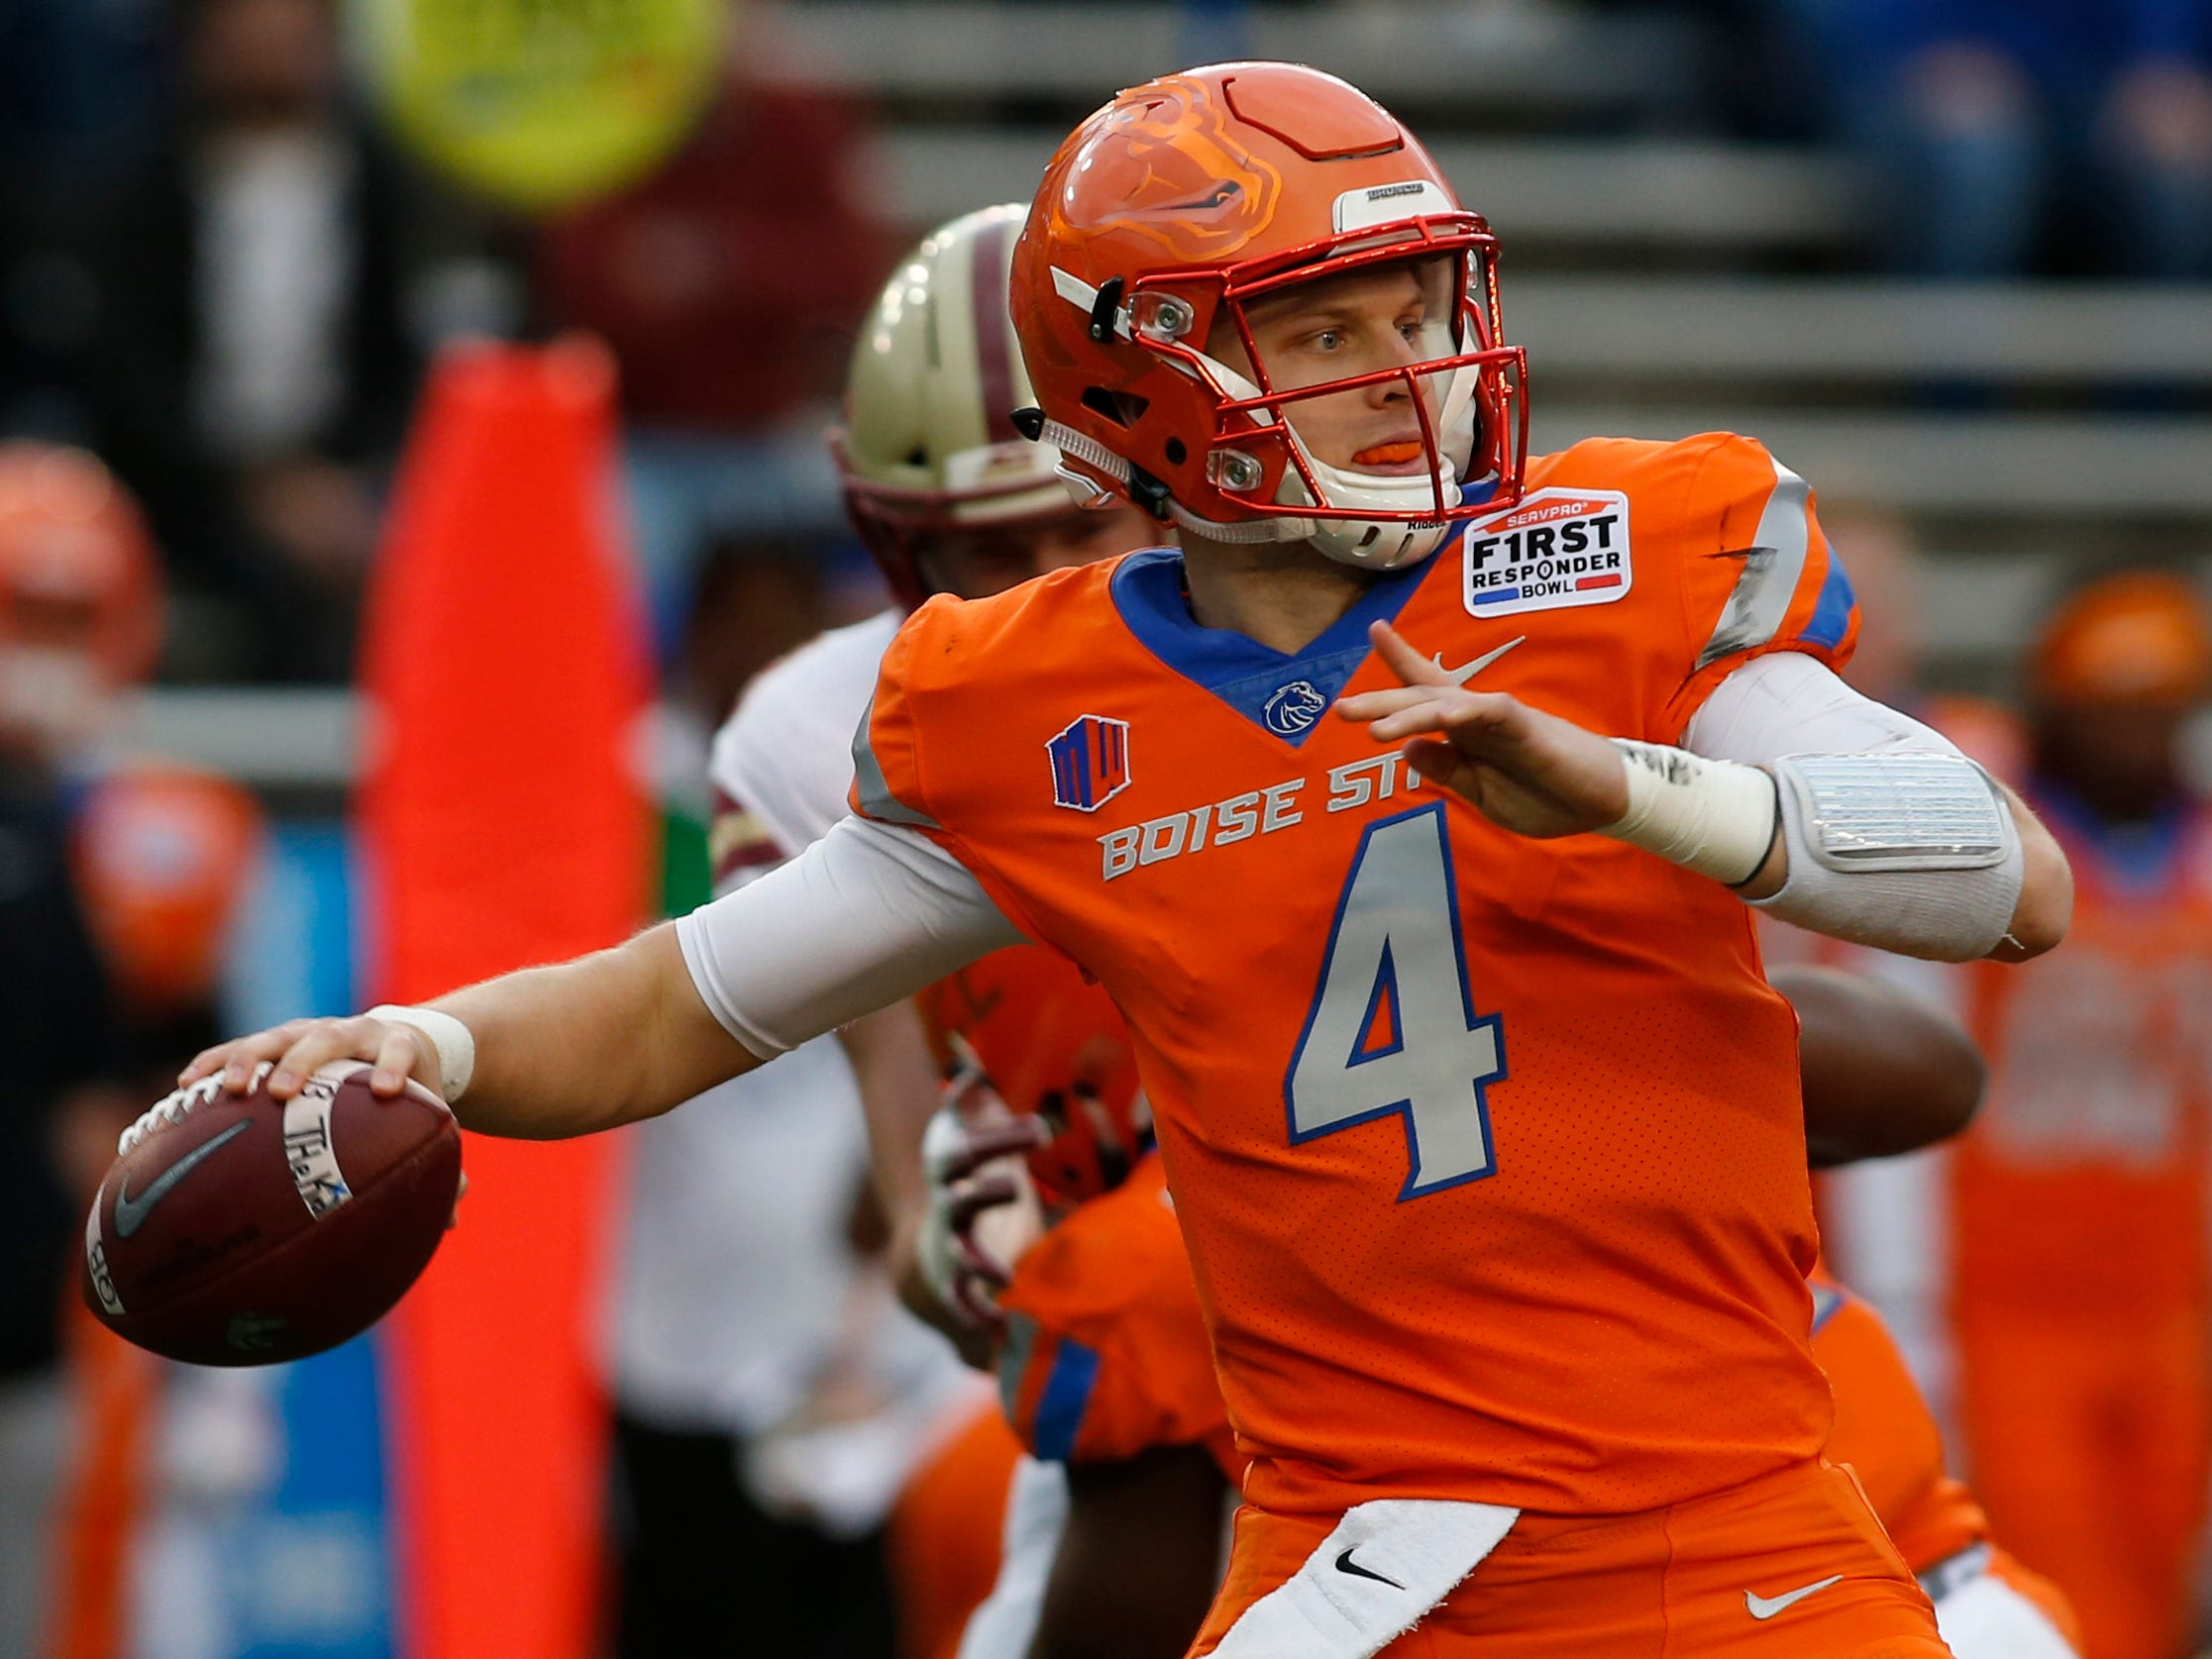 Boise State quarterback Brett Rypien  throws a pass in the first quarter against Boston College in the First Responder Bowl at the Cotton Bowl. The game was canceled due to weather.